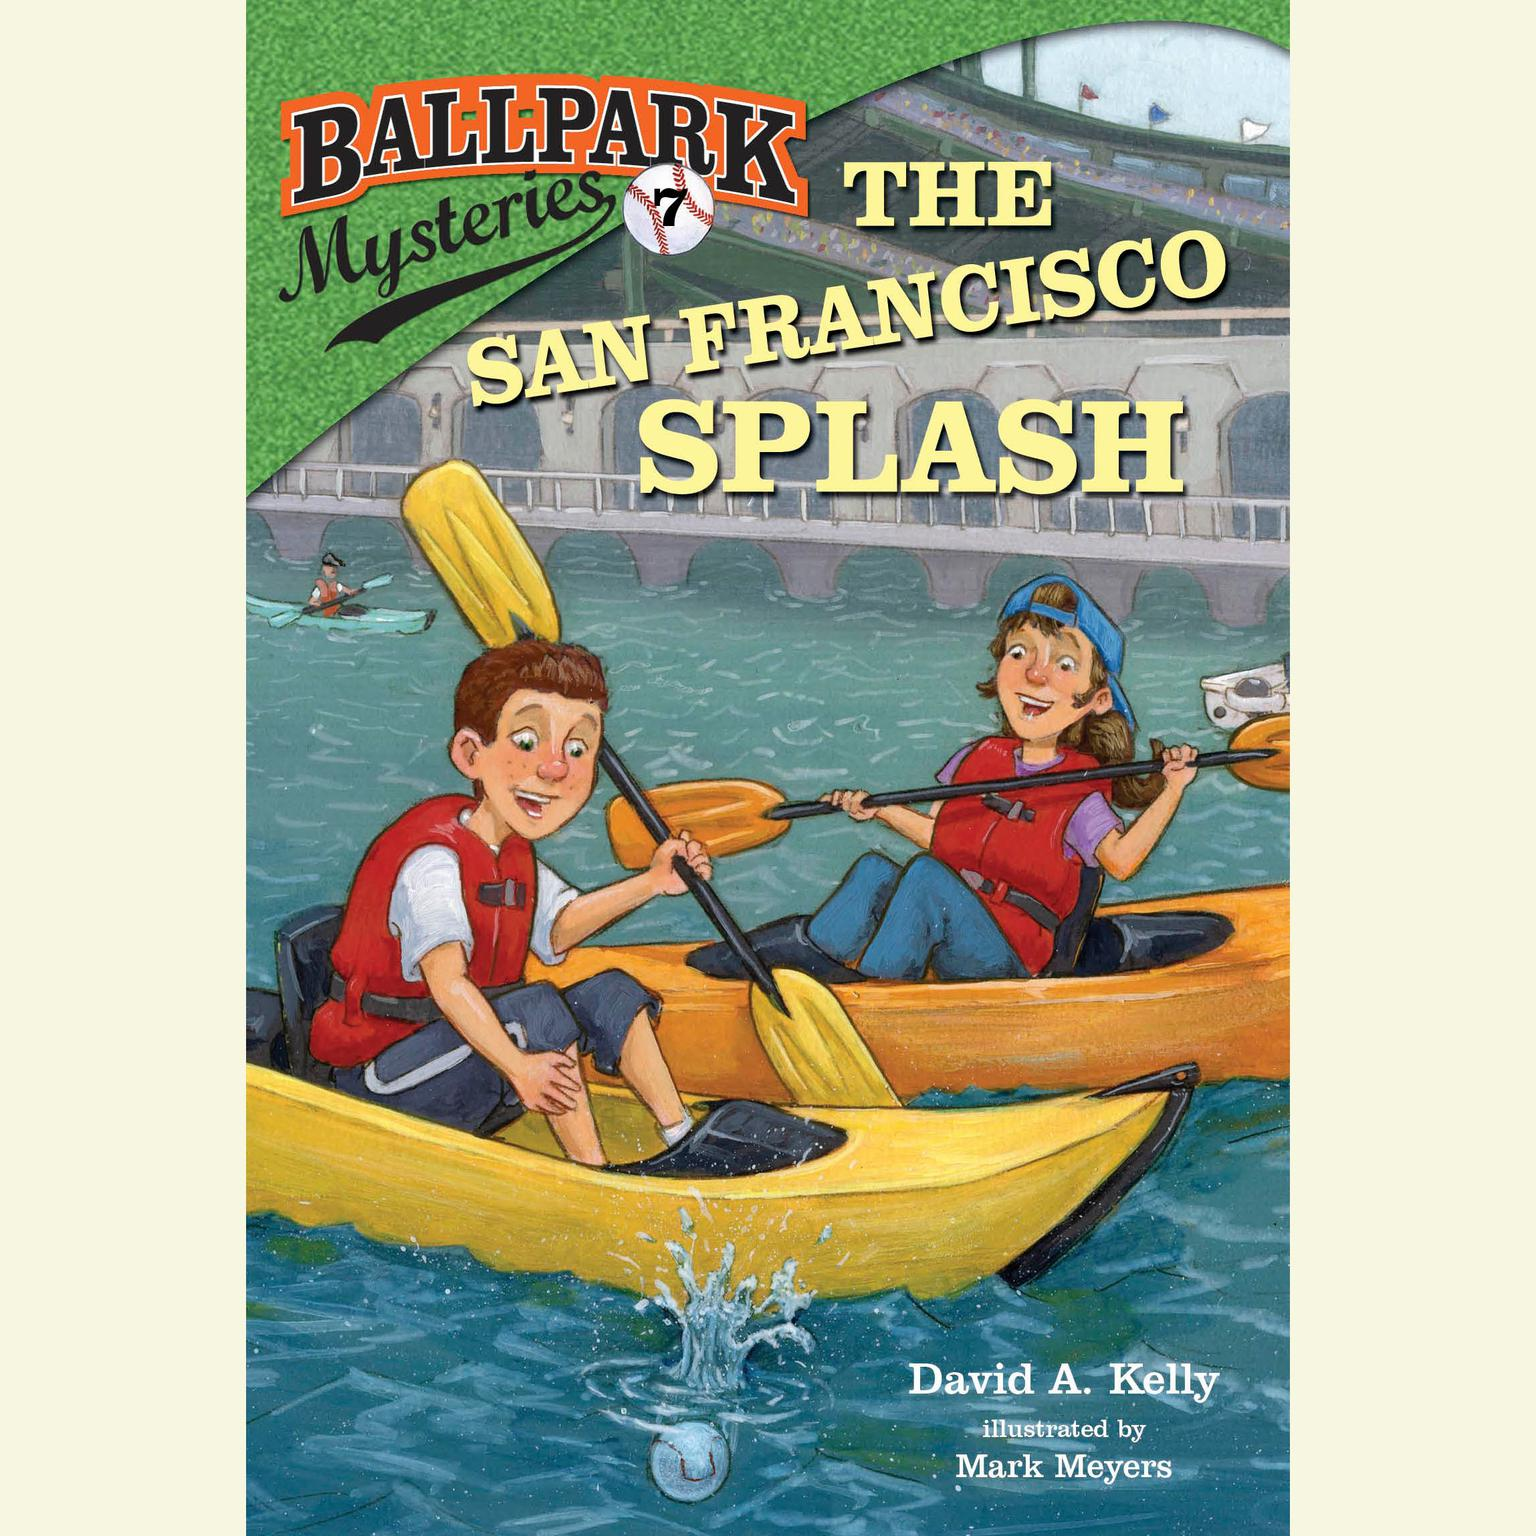 Printable Ballpark Mysteries #7: The San Francisco Splash Audiobook Cover Art